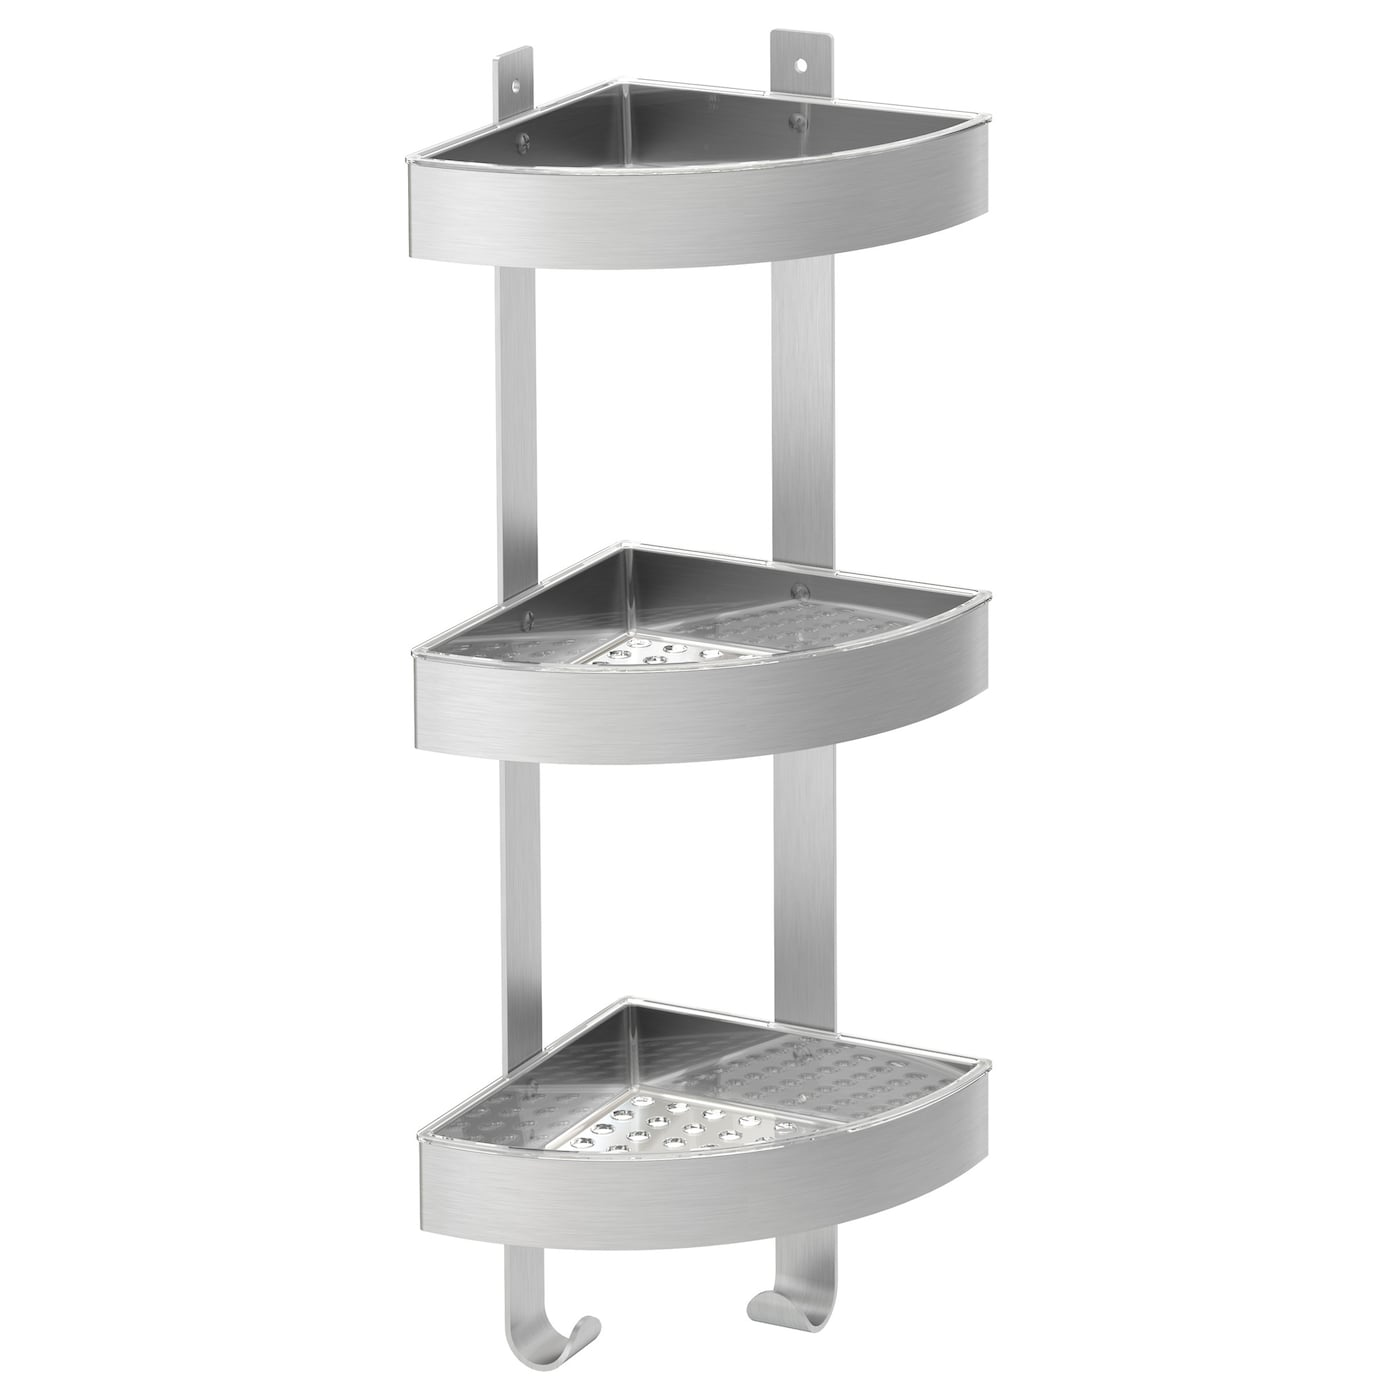 Grundtal corner wall shelf unit stainless steel 26x58 cm for Ikea grundtal spice rack